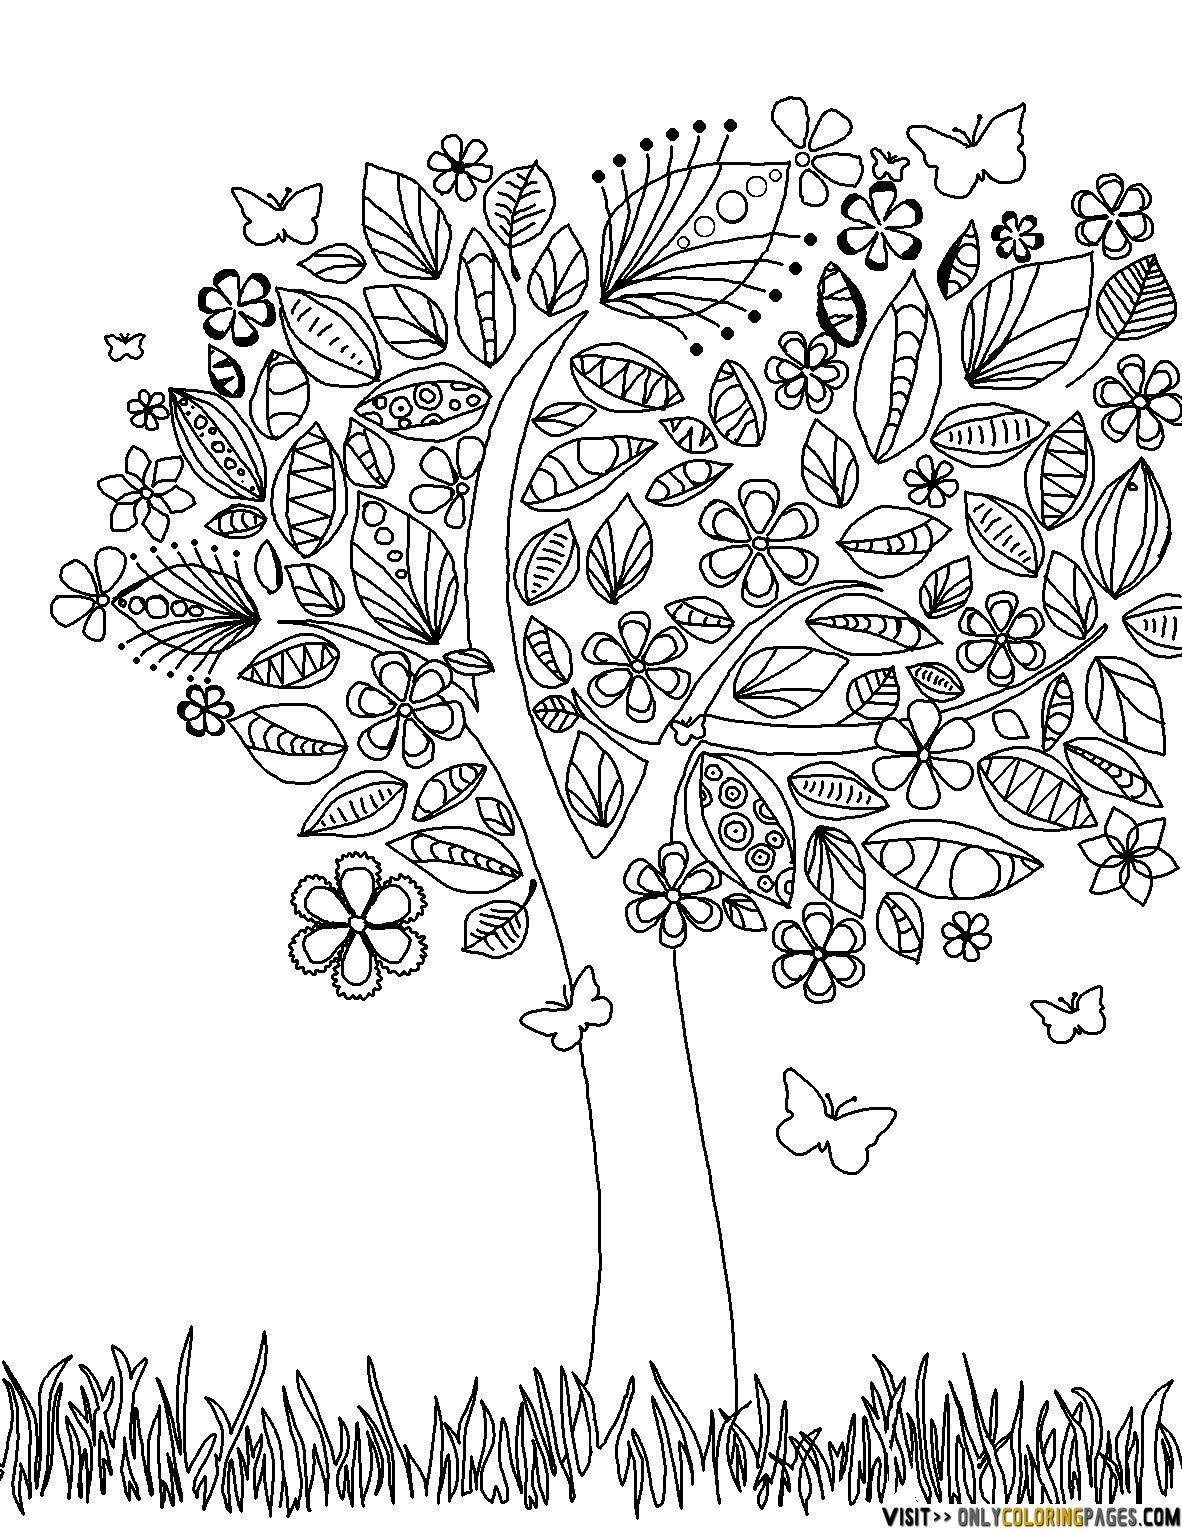 coloring pages of flowers for teenagers difficult 03 | Free ...